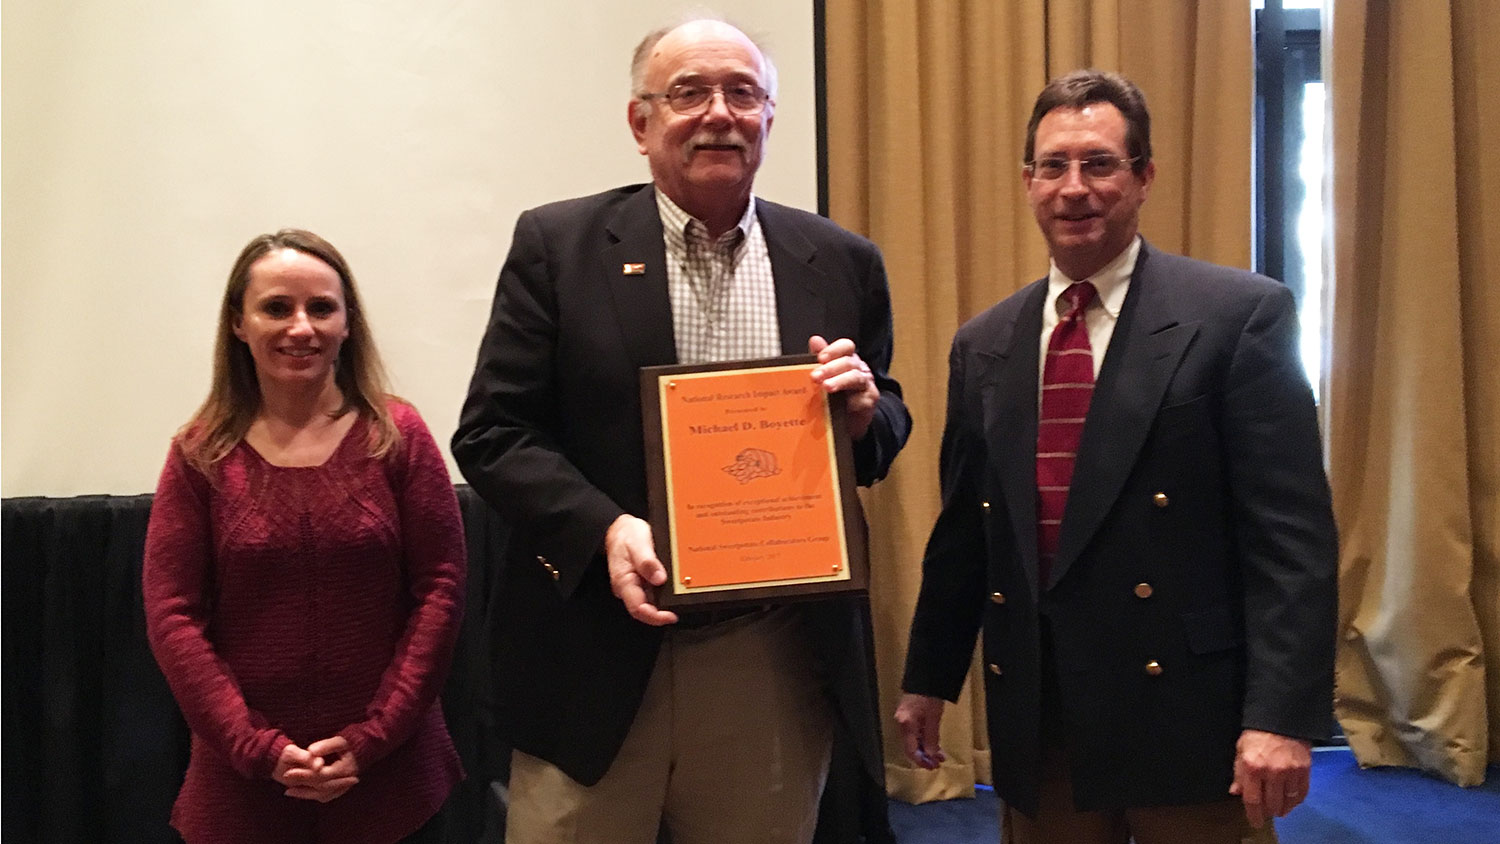 Mike Boyette receives the National Research Impact Award